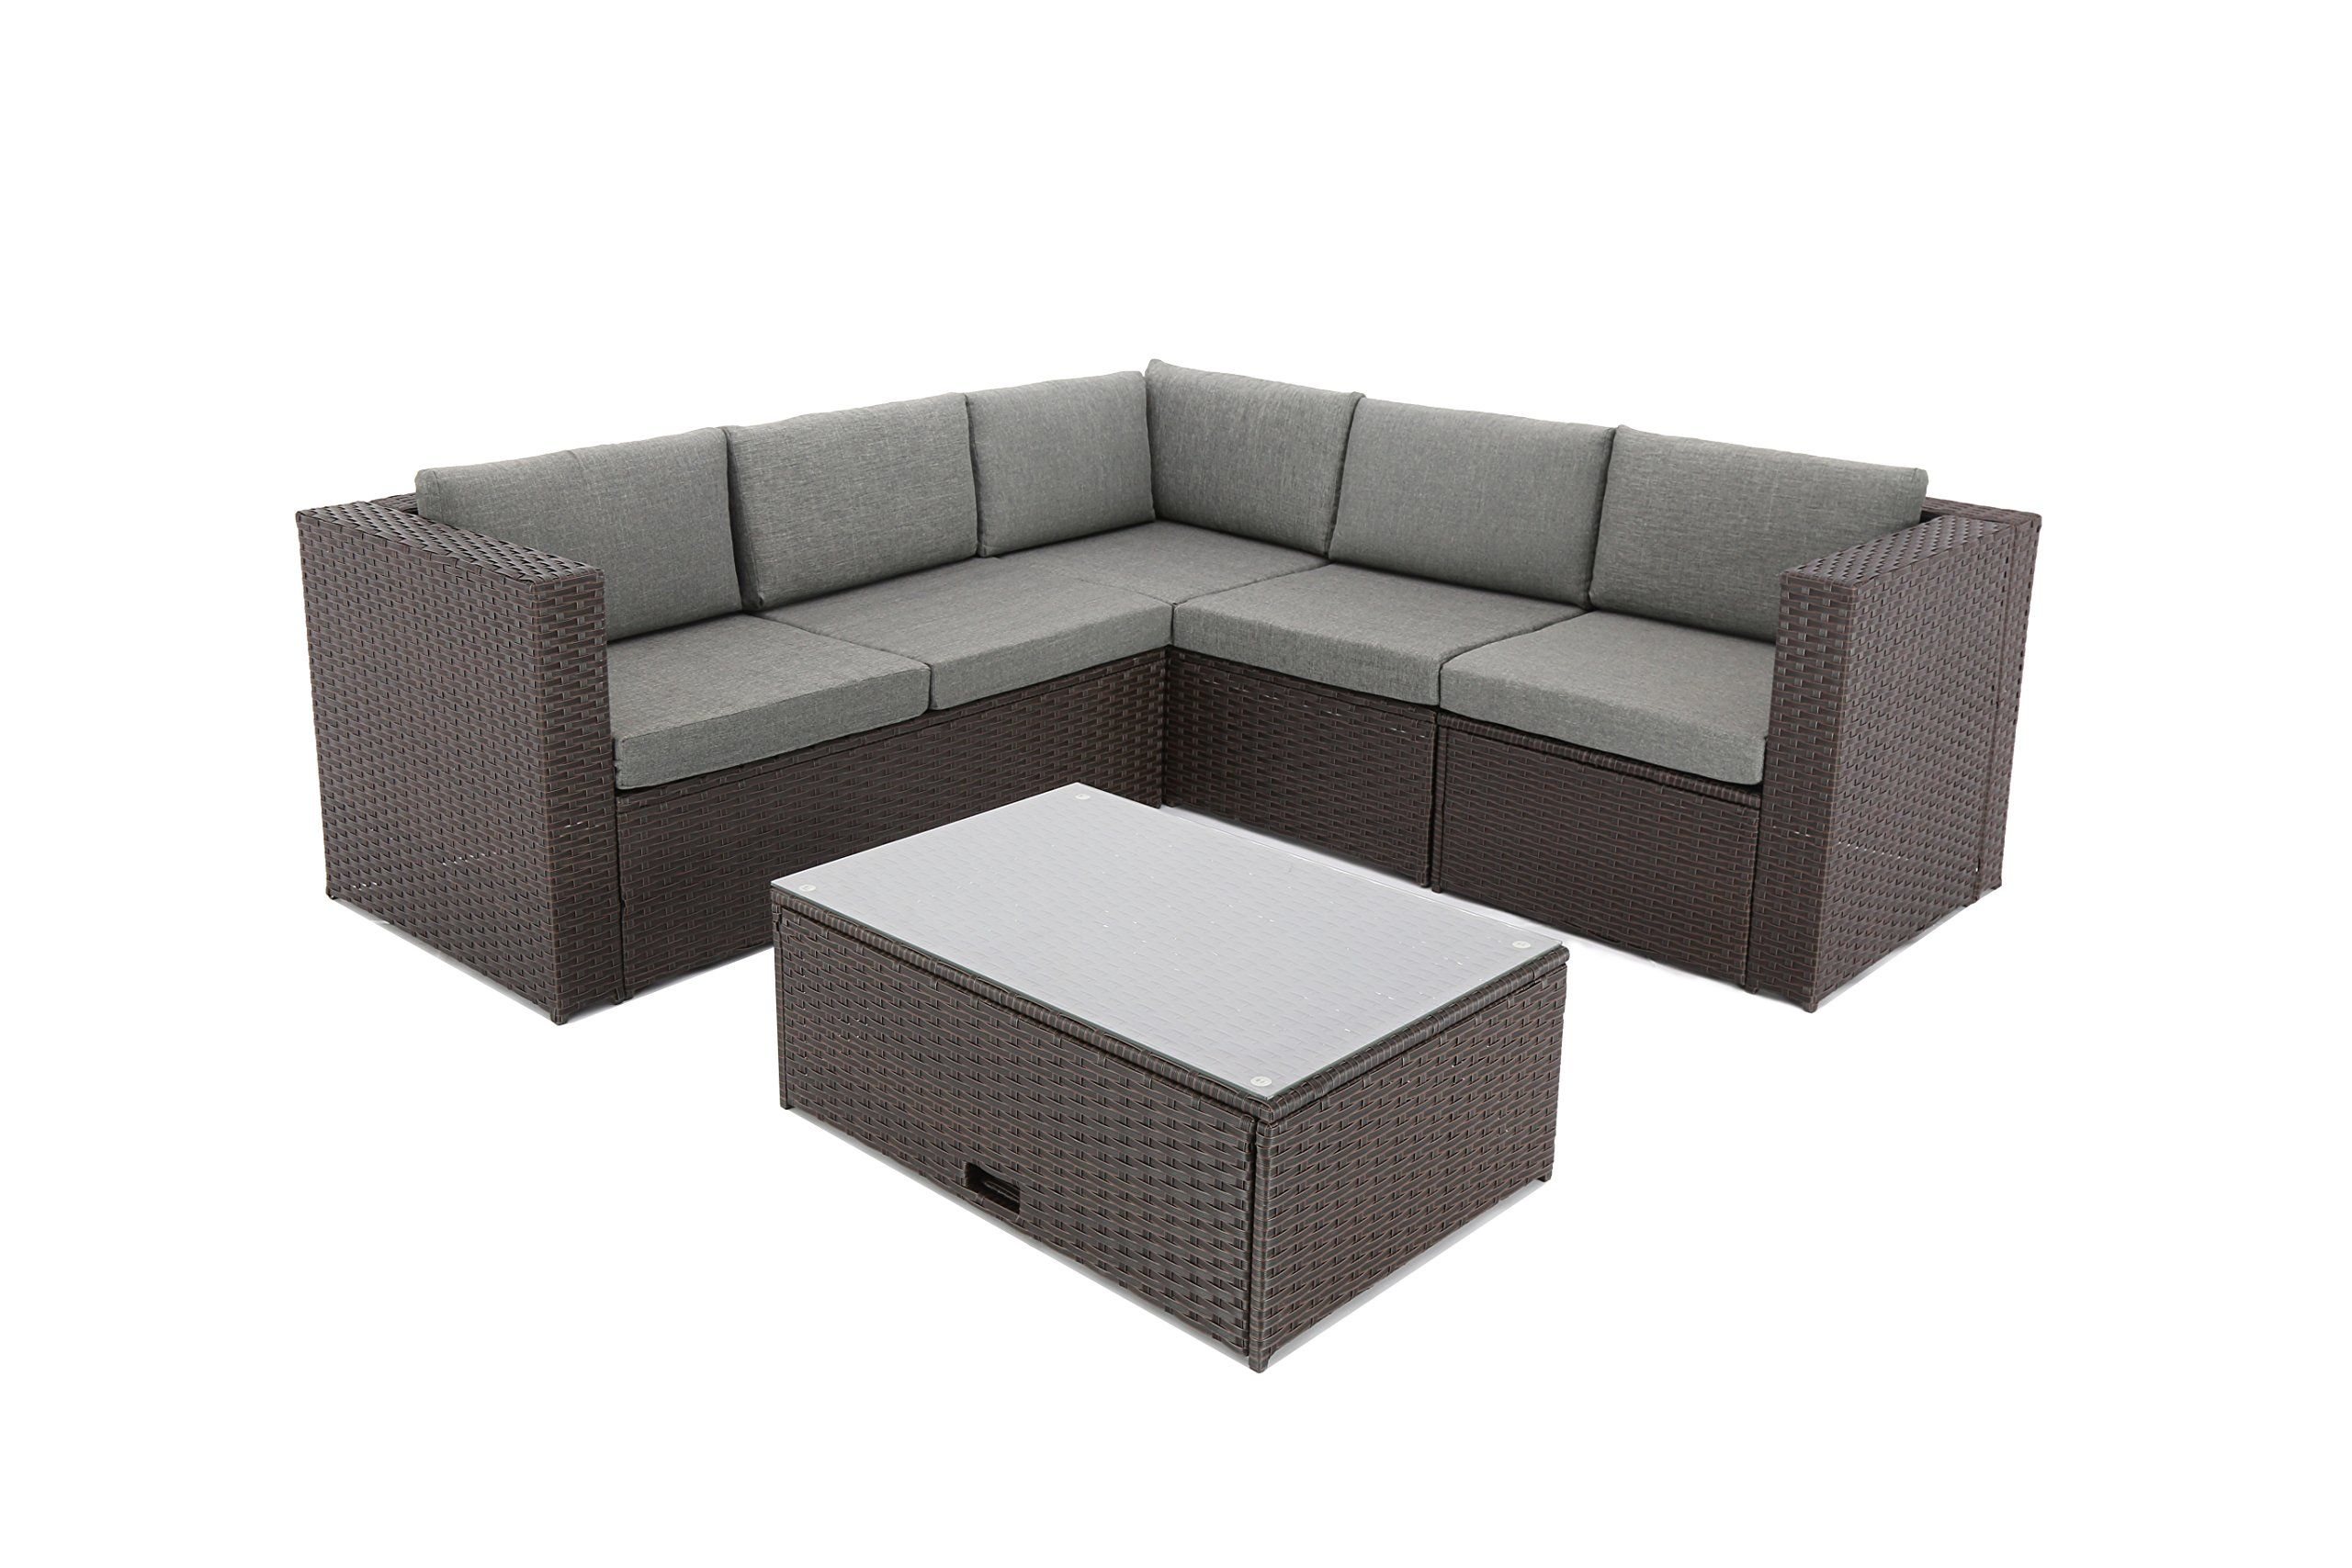 88a9cab284ef Baner Garden K35CH 4 Pieces Outdoor Furniture Complete Patio Cushion Wicker  Rattan Garden Corner Sofa Couch Set Chocolate *** To view further for this  item, ...